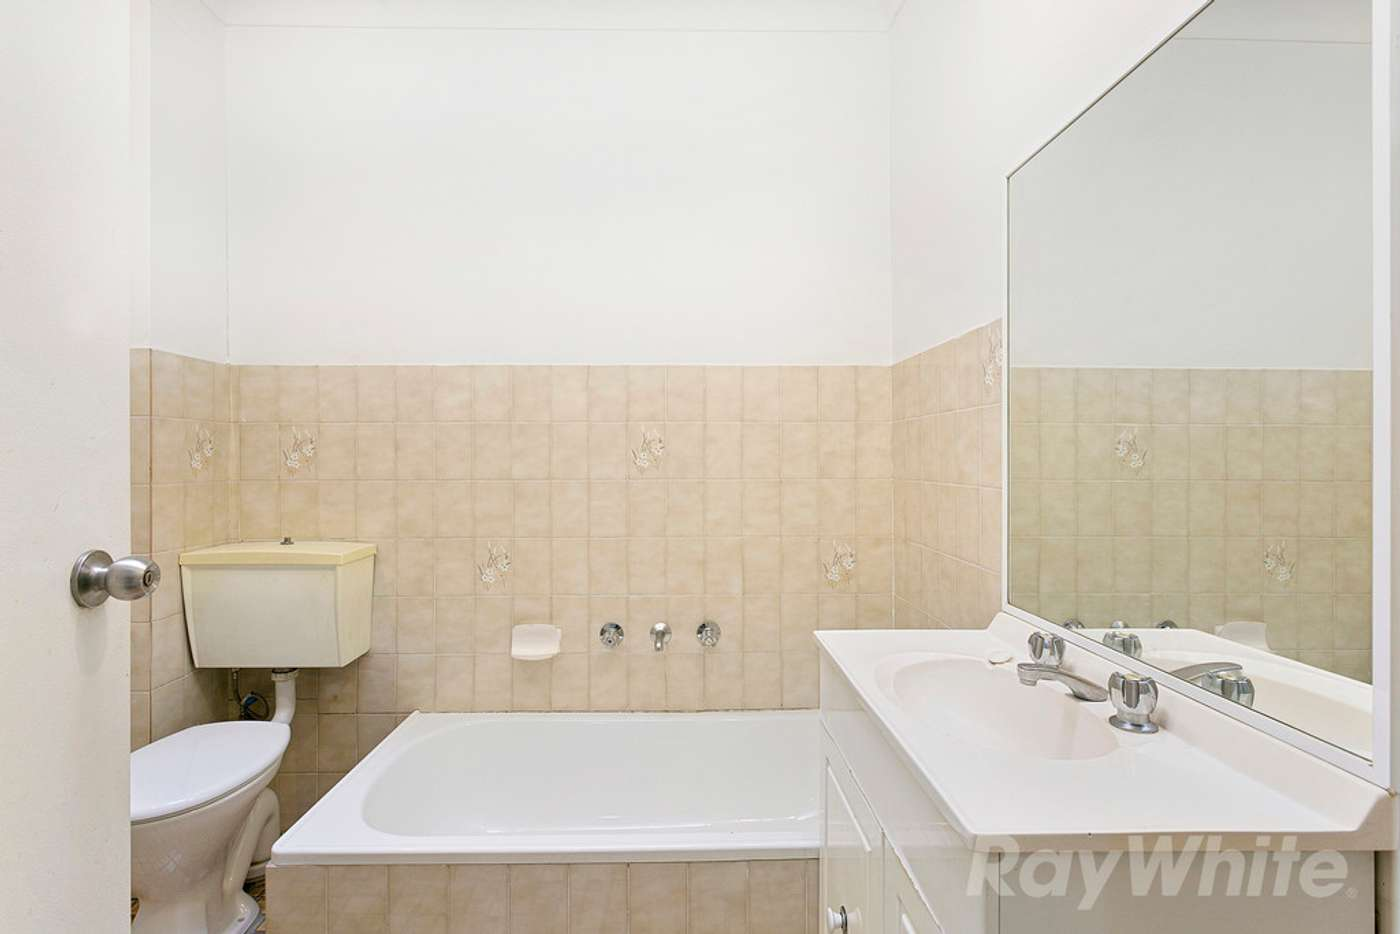 Seventh view of Homely townhouse listing, 3/181 Missenden Rd, Newtown NSW 2042